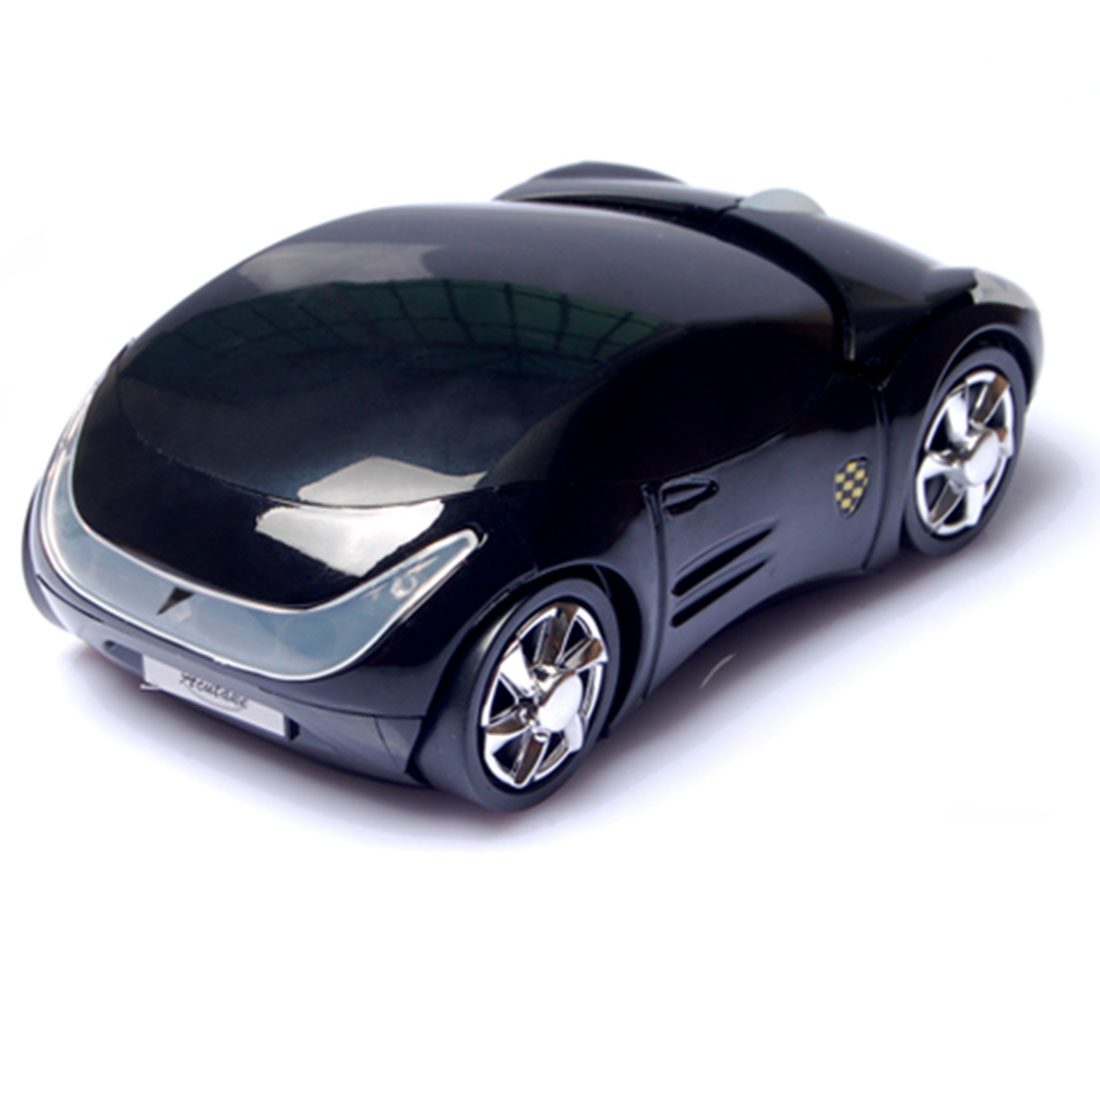 Etmakit 3D Optical USB Wired Mouse Mice 1200DPI Car Shape Wired Mouse Computer Mice Fashion Super Game Mice 2.4Ghz Optical